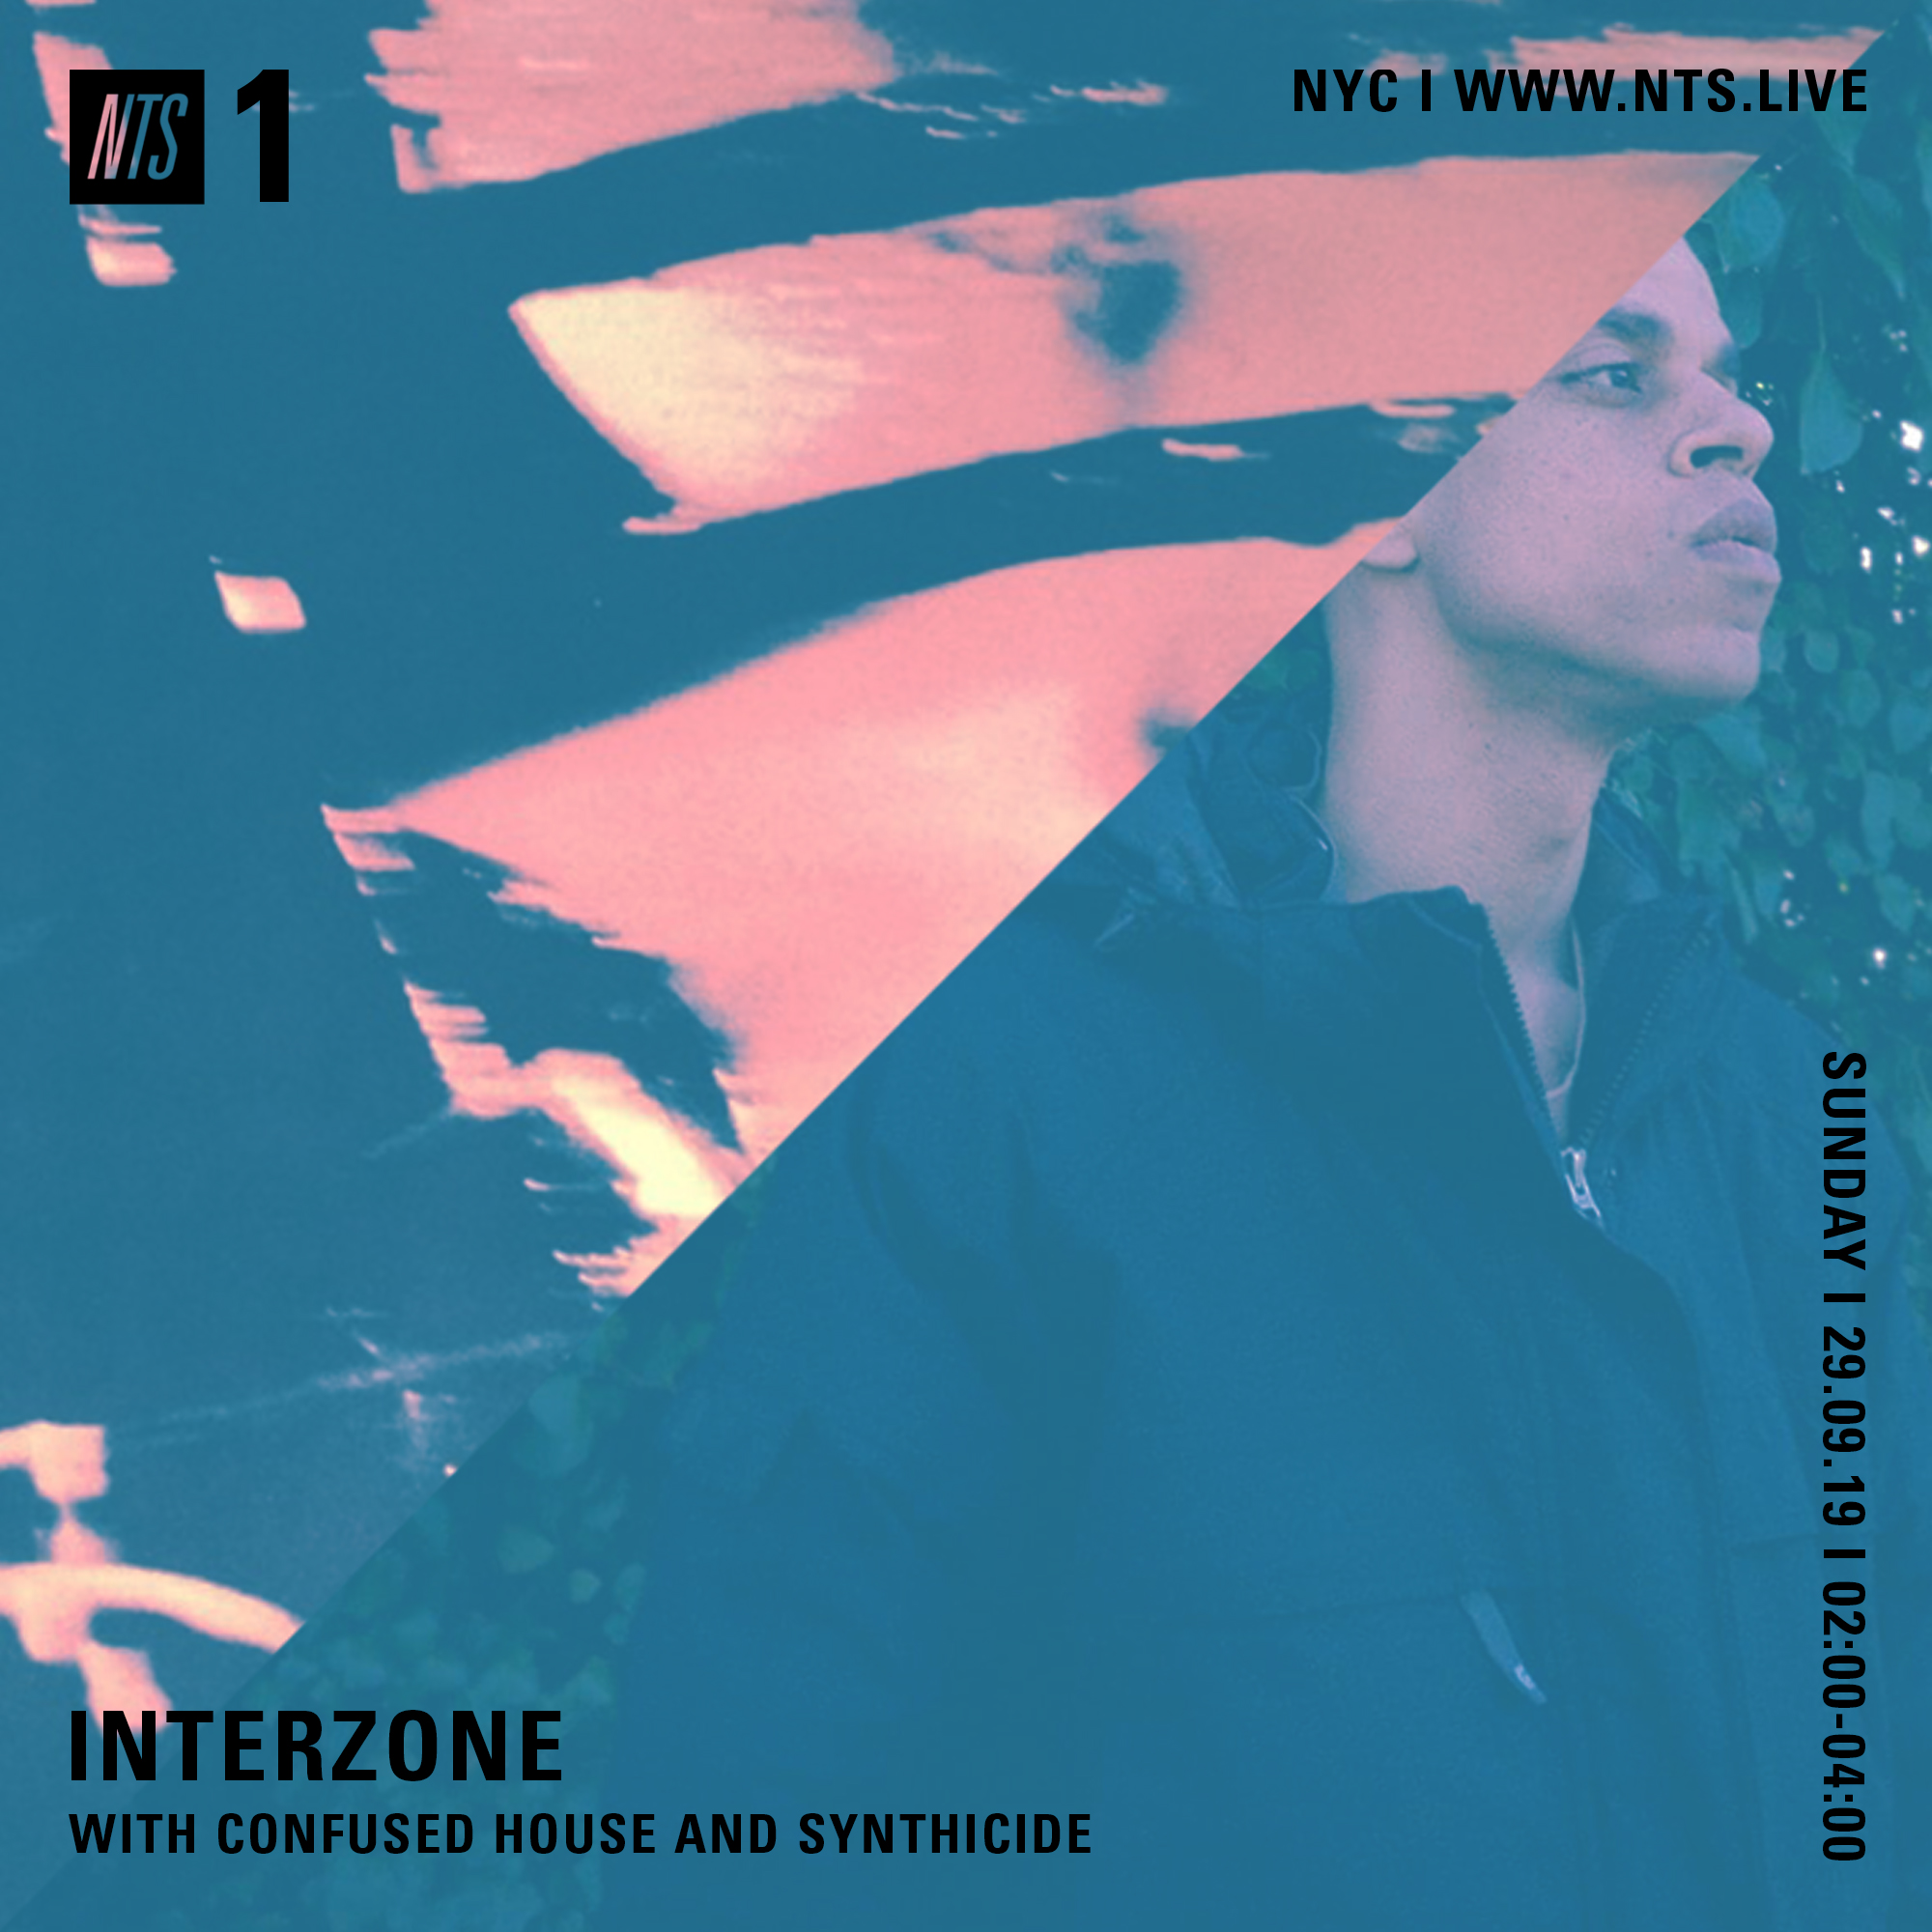 Tune into NTS Radio this evening for the second of our INTERZONE radio sessions. Tonight's show features Confused House and Synthicide (with IZ2019 artist Kontravoid in the mix for the latter.) We'll be going live between 9-11pm NYC time on Ch1: http://www.nts.live